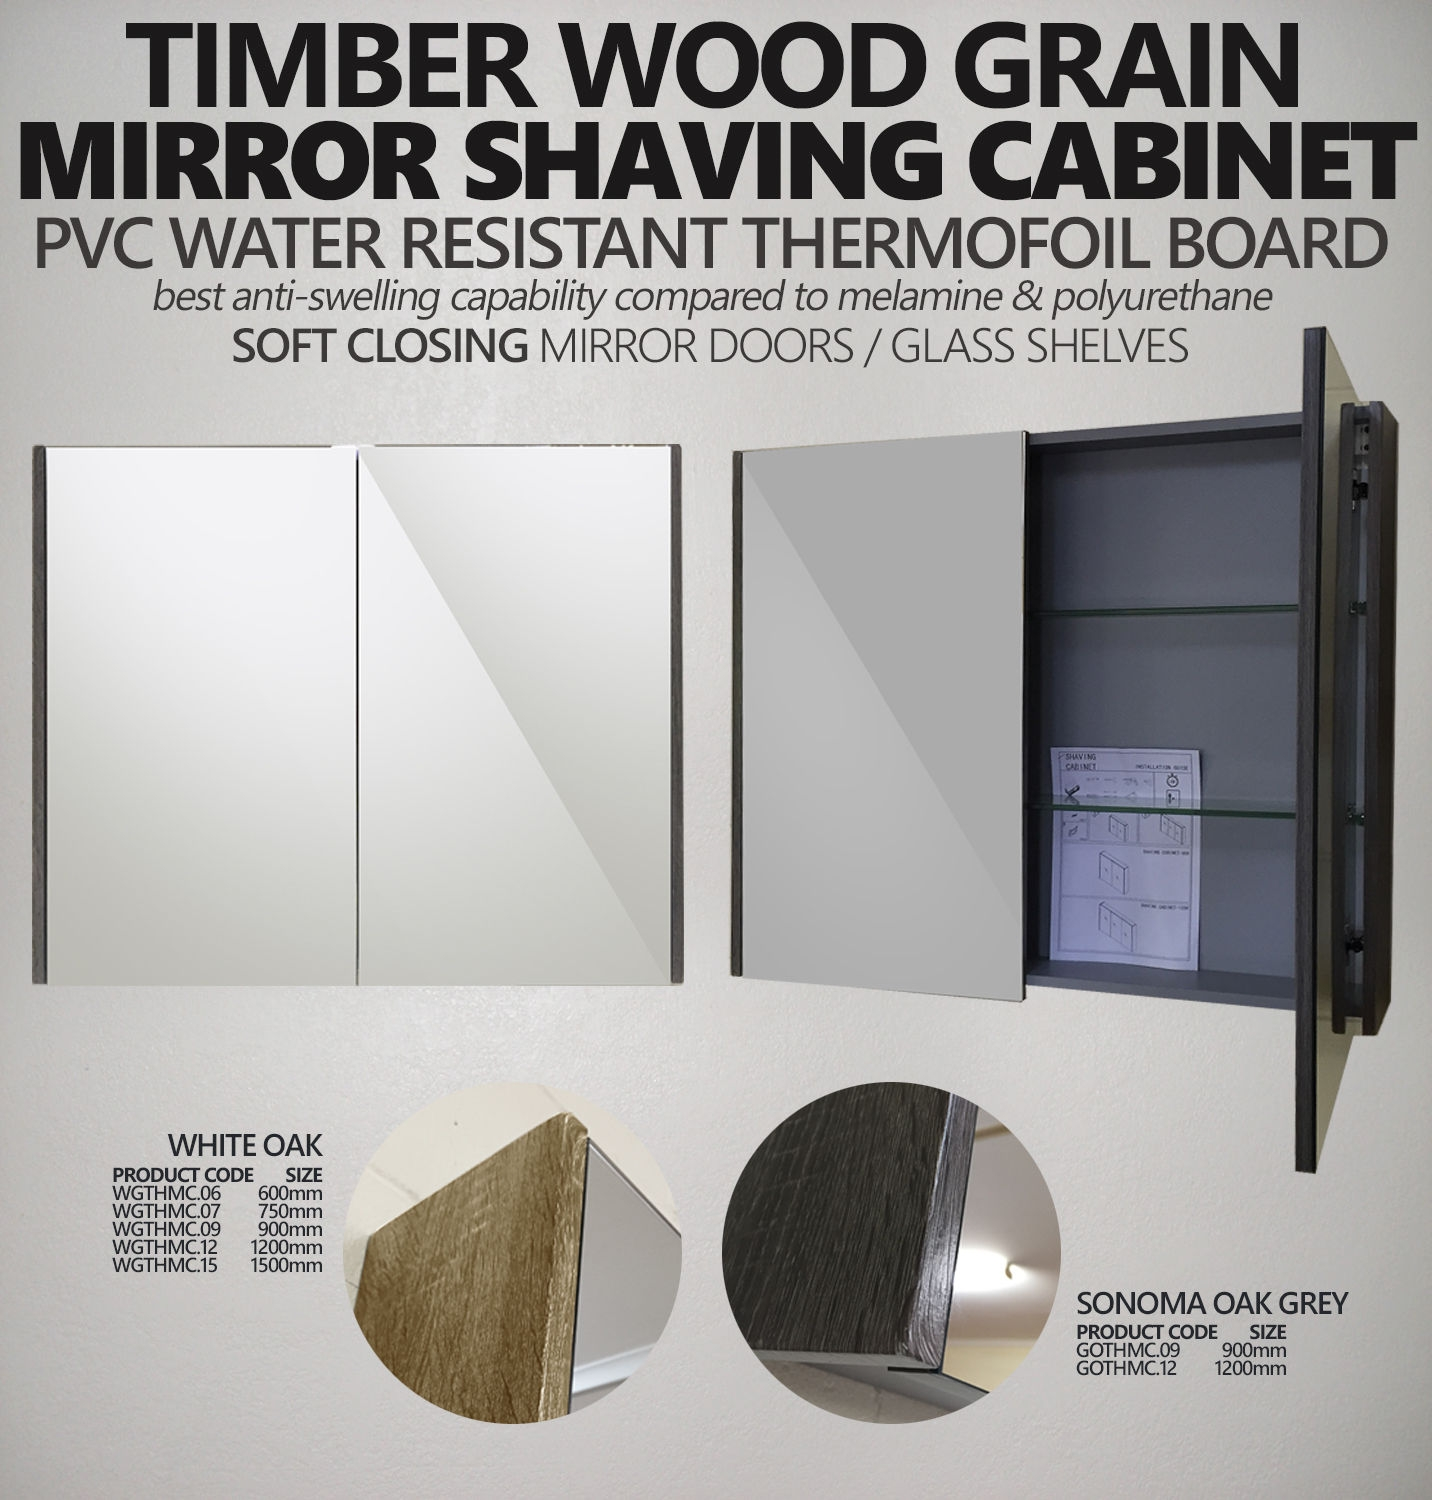 SHAVE   PVC Thermal Foil Mirror Shaving Cabinet with Timber Wood ...